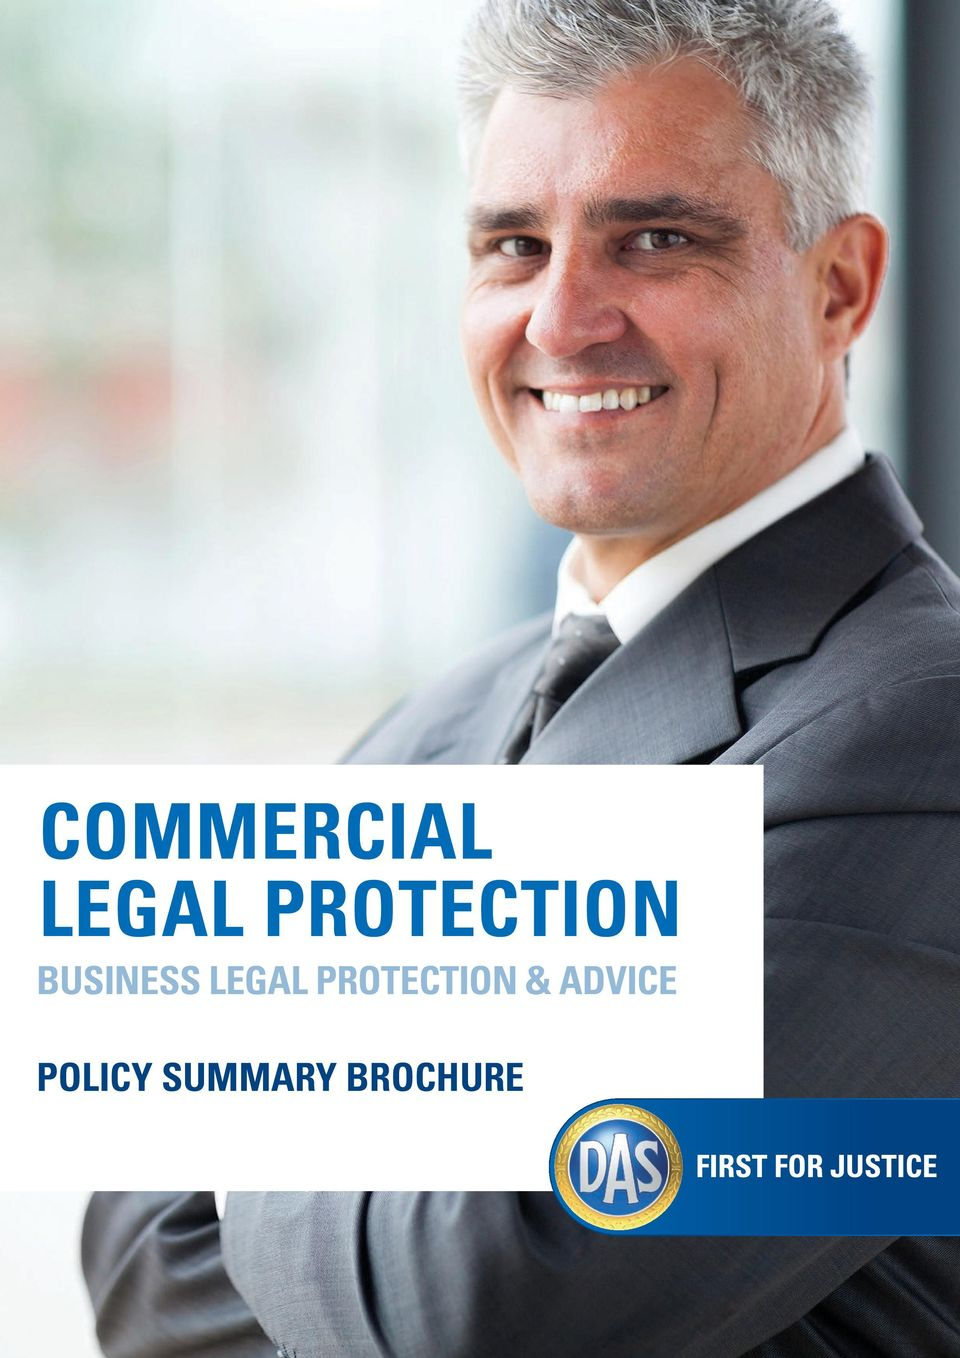 LEGAL PROTECTION &